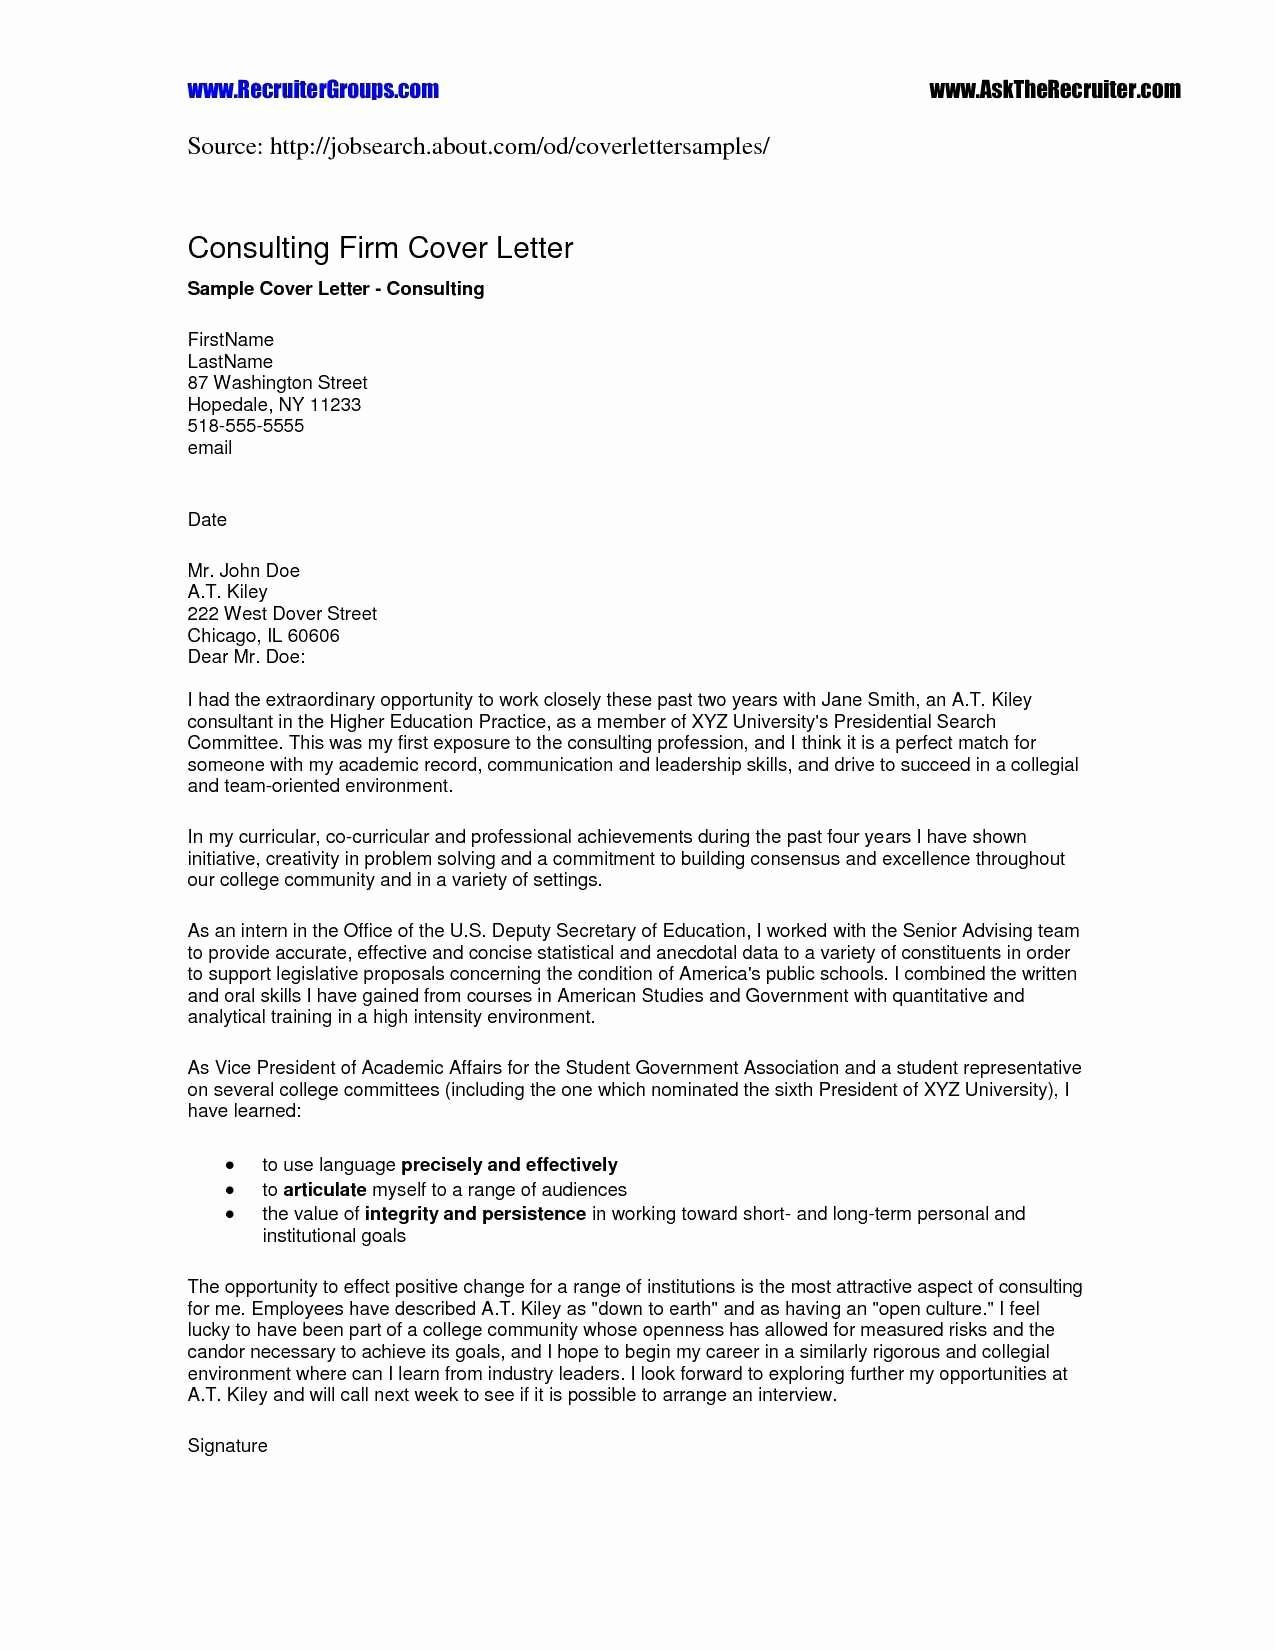 open office cover letter template free example-Free Open fice Resume Templates New Resume Template Open Fice Free Unique Open Fice Calc Templates 20-p